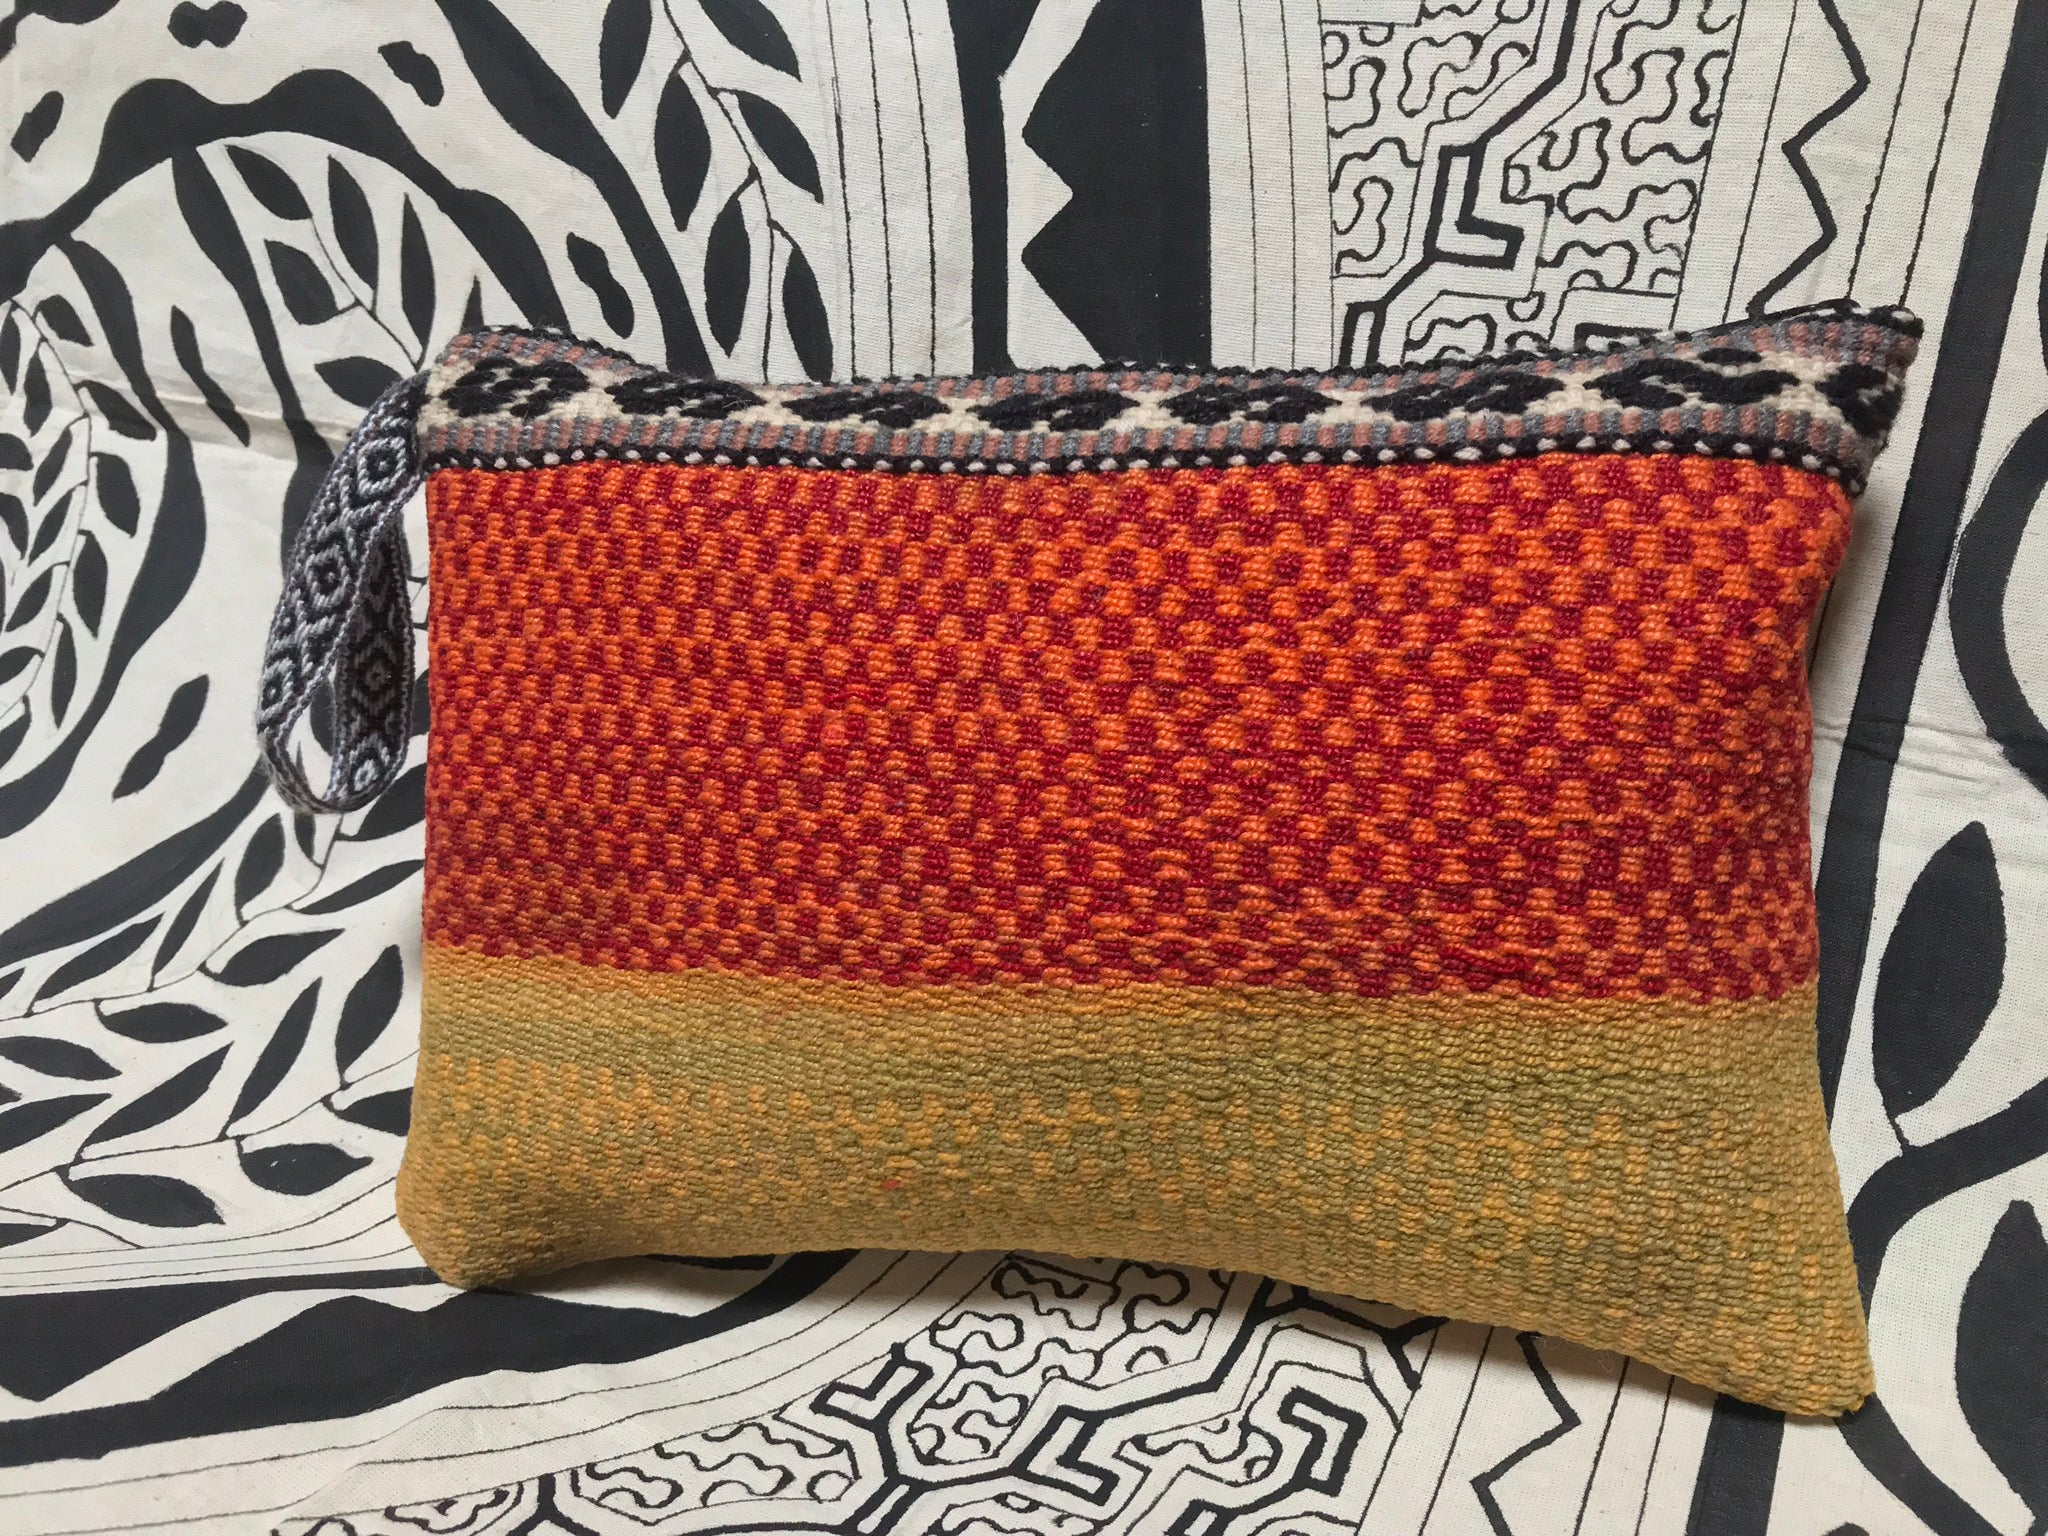 Large Fair Trade Upcycled Andean Woven Bag